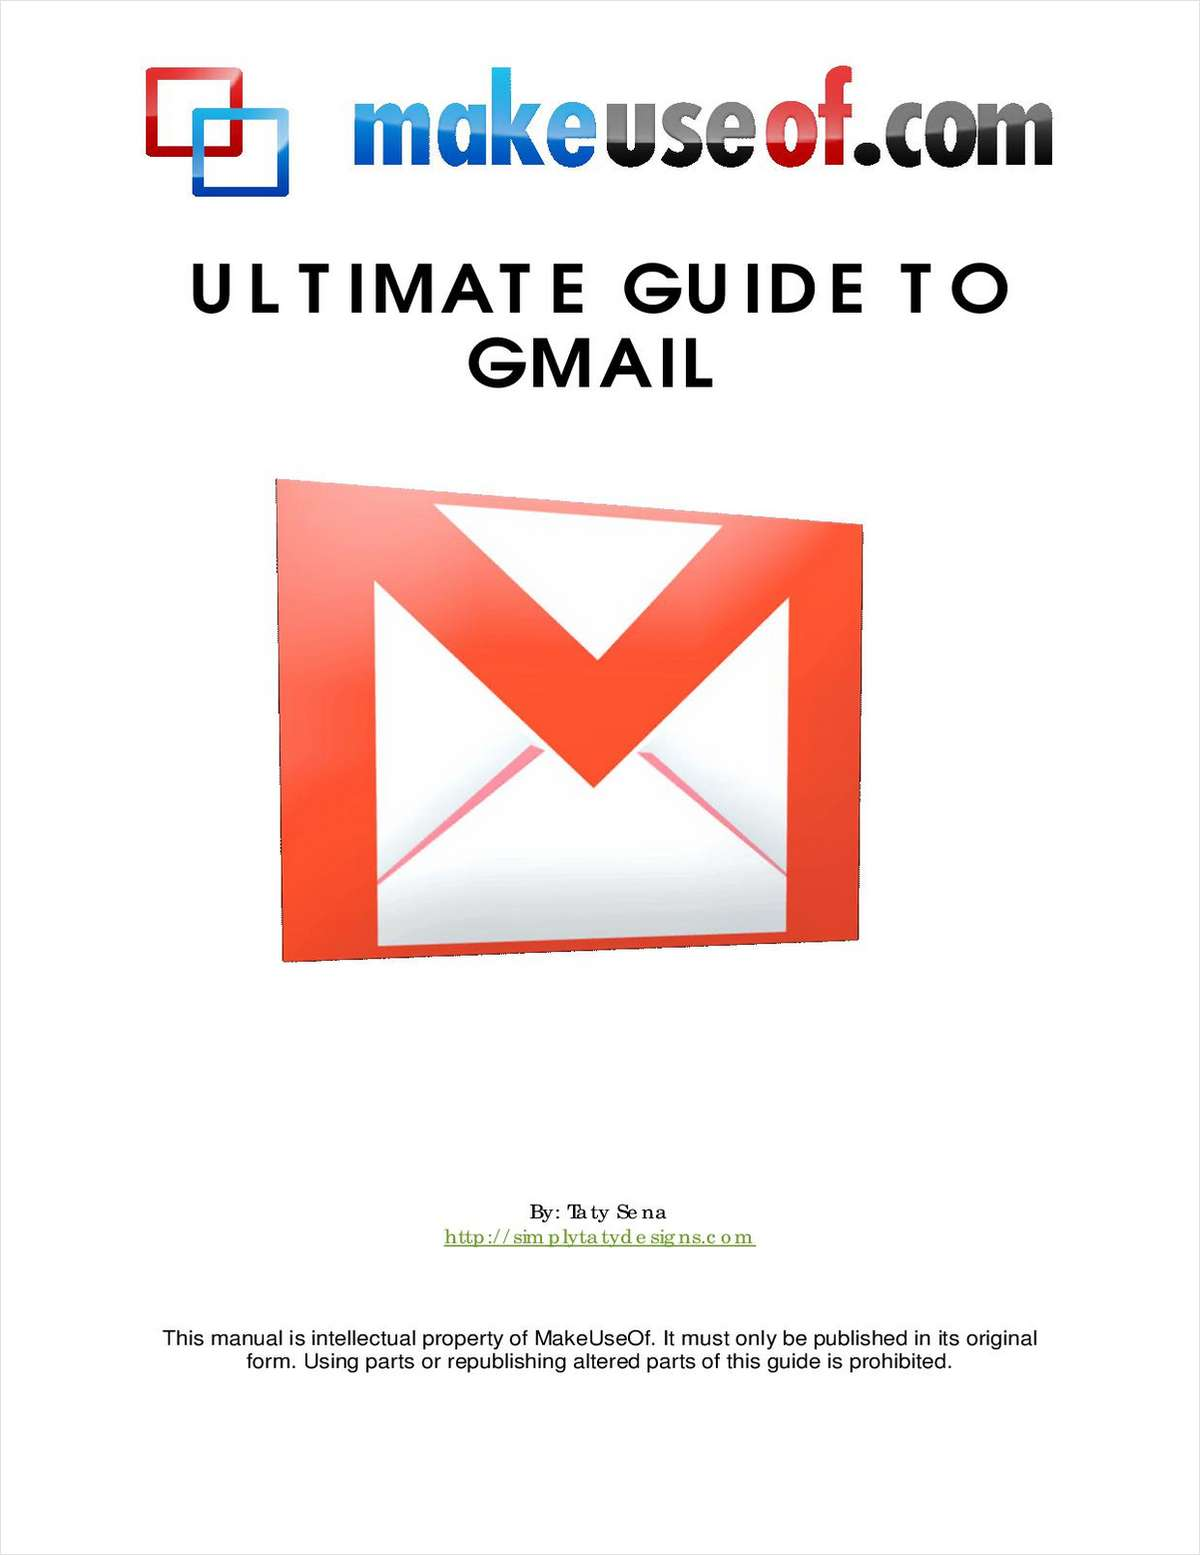 The Ultimate Guide to Gmail